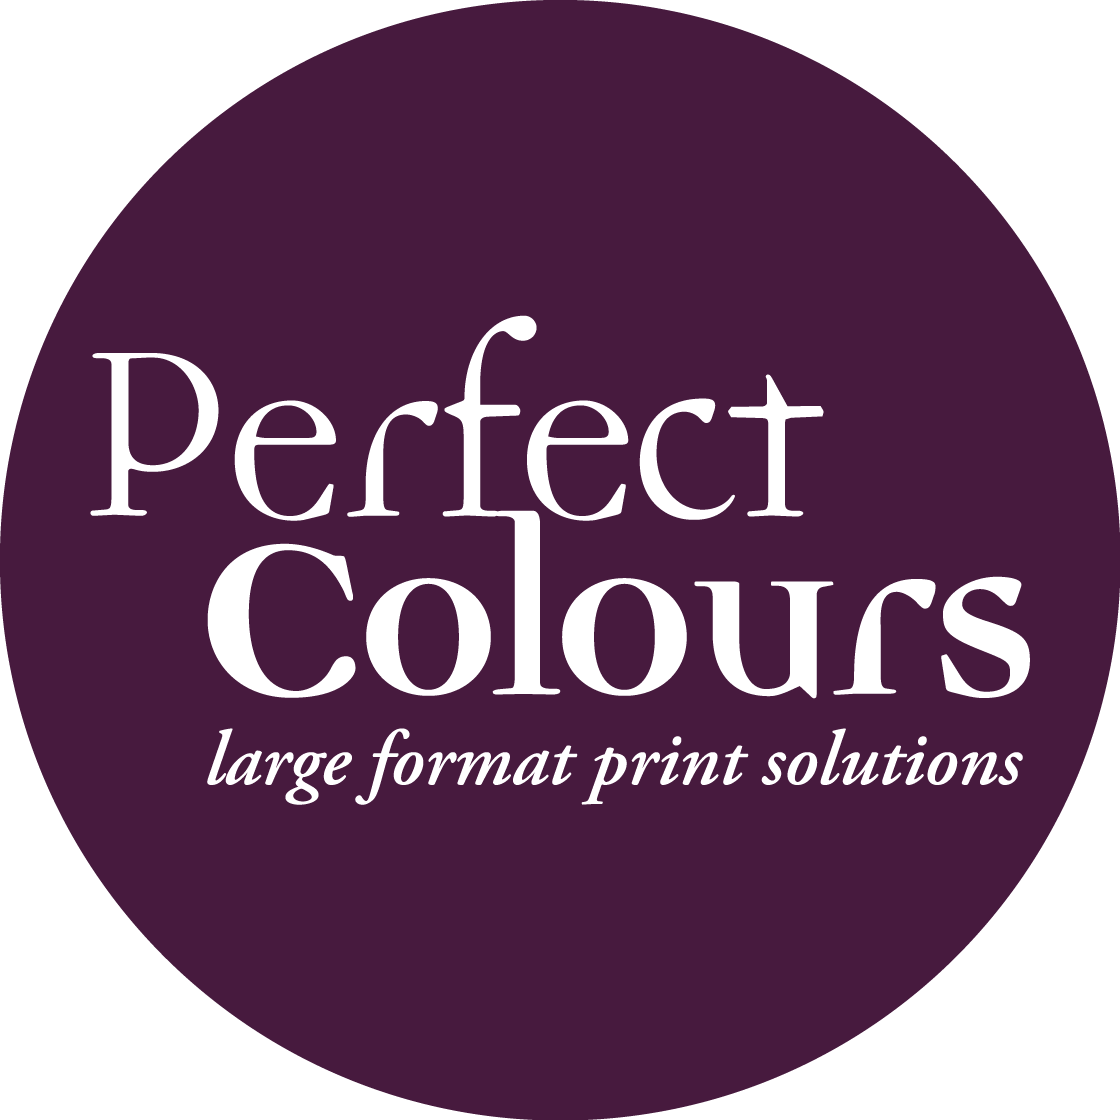 Perfect Colours logo-circle.png